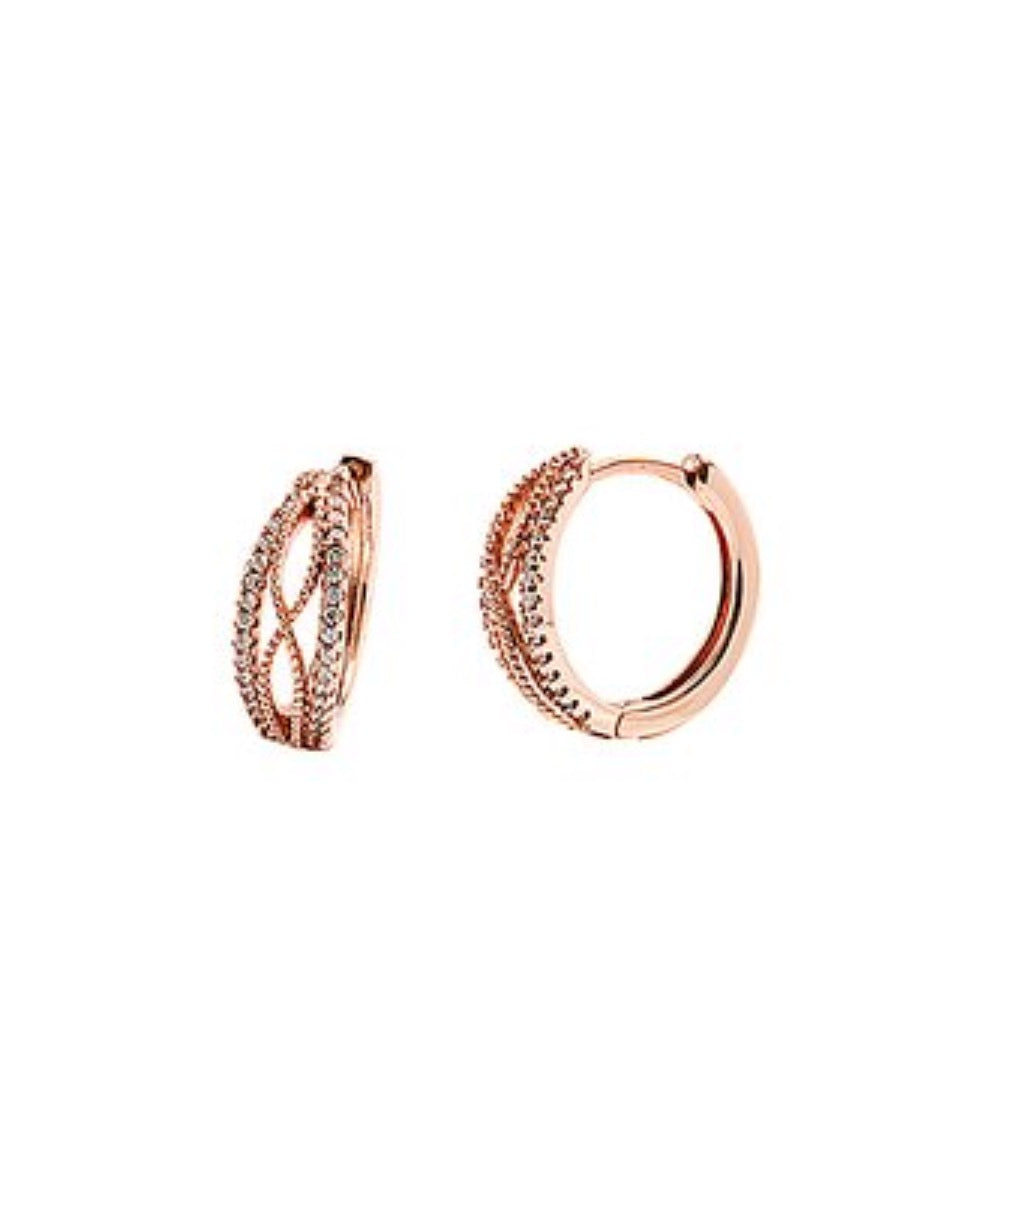 Earrings - Rose Gold Infinity